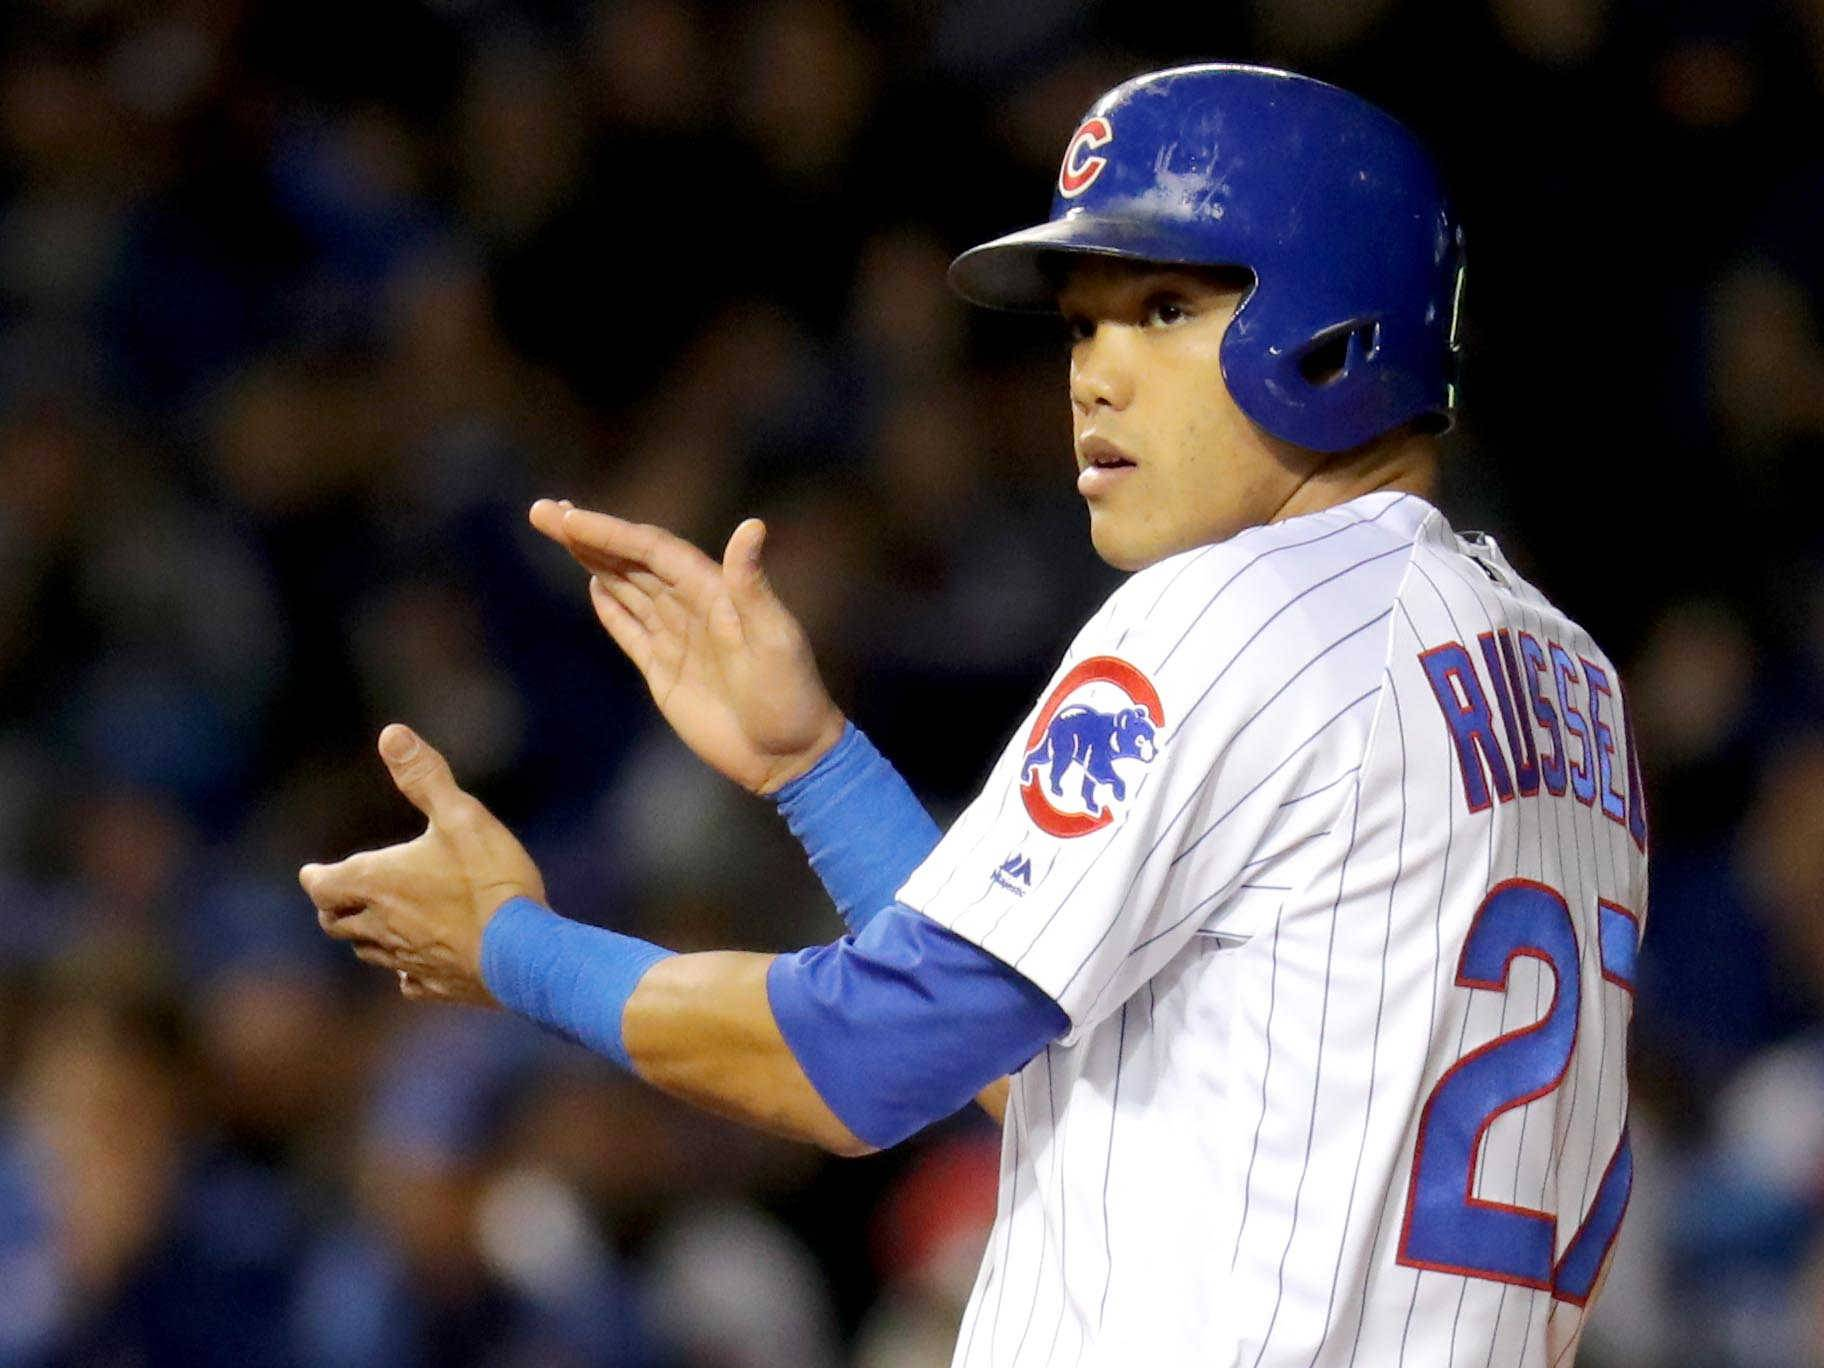 Chicago Cubs shortstop Addison Russell had 21 homers and 95 RBI last season.